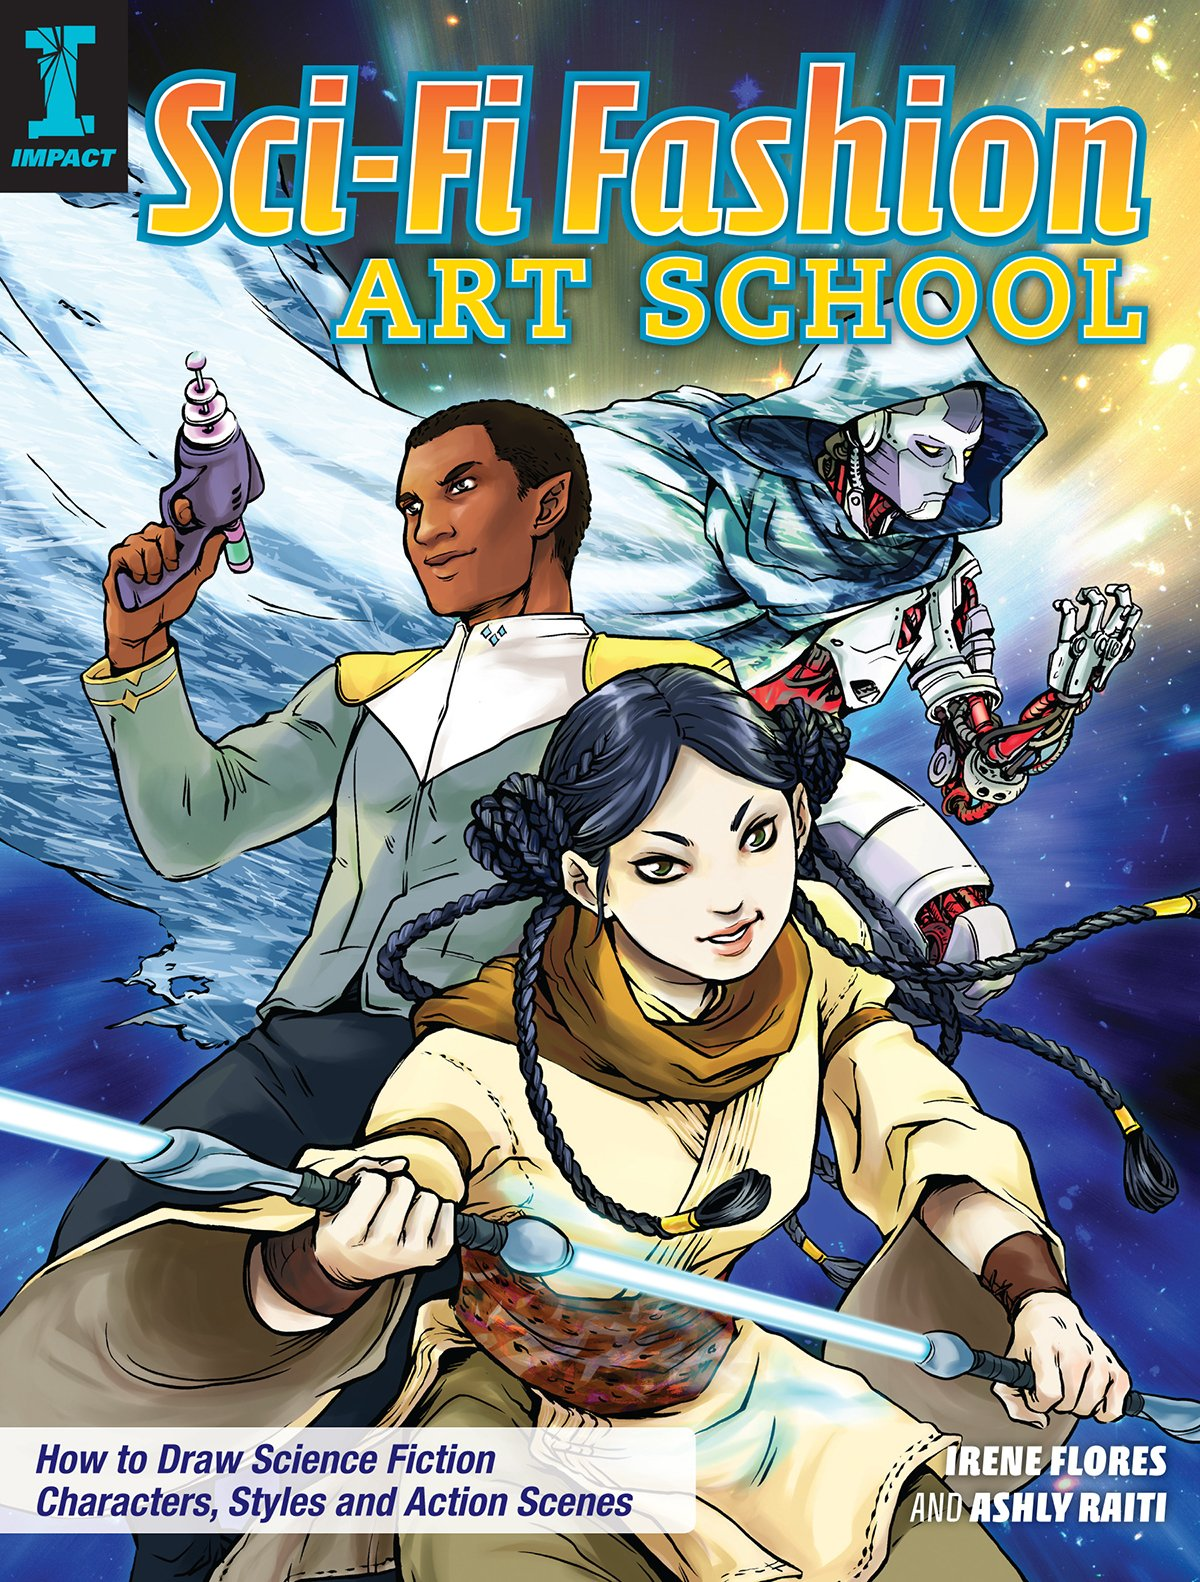 Download Sci-Fi Fashion Art School: How to Draw Science Fiction Characters, Styles and Action Scenes pdf